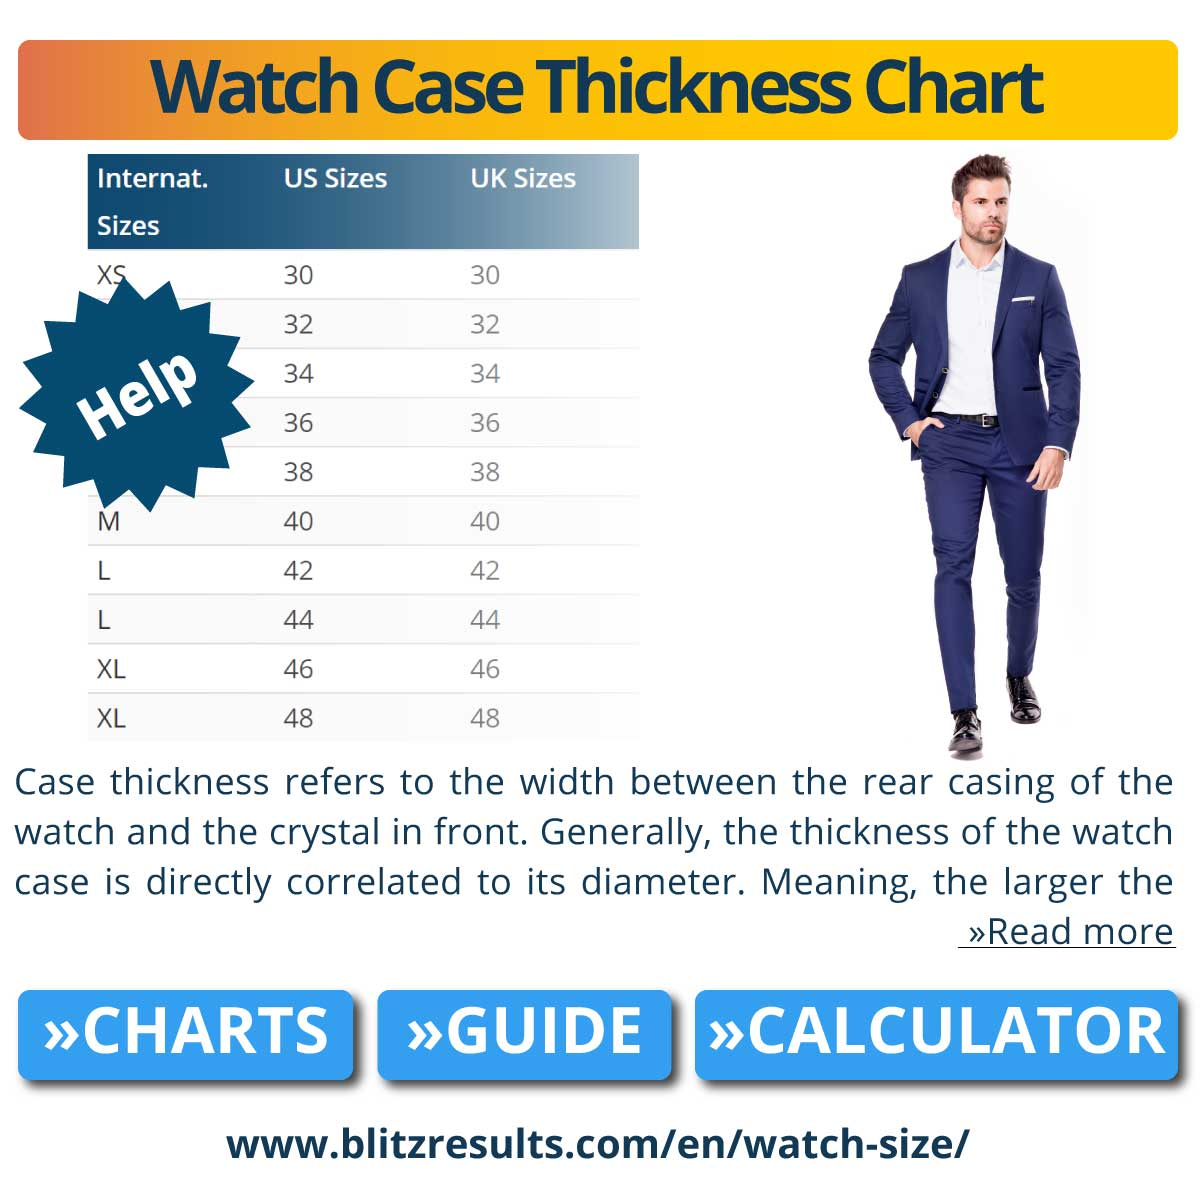 Watch Case Thickness Chart